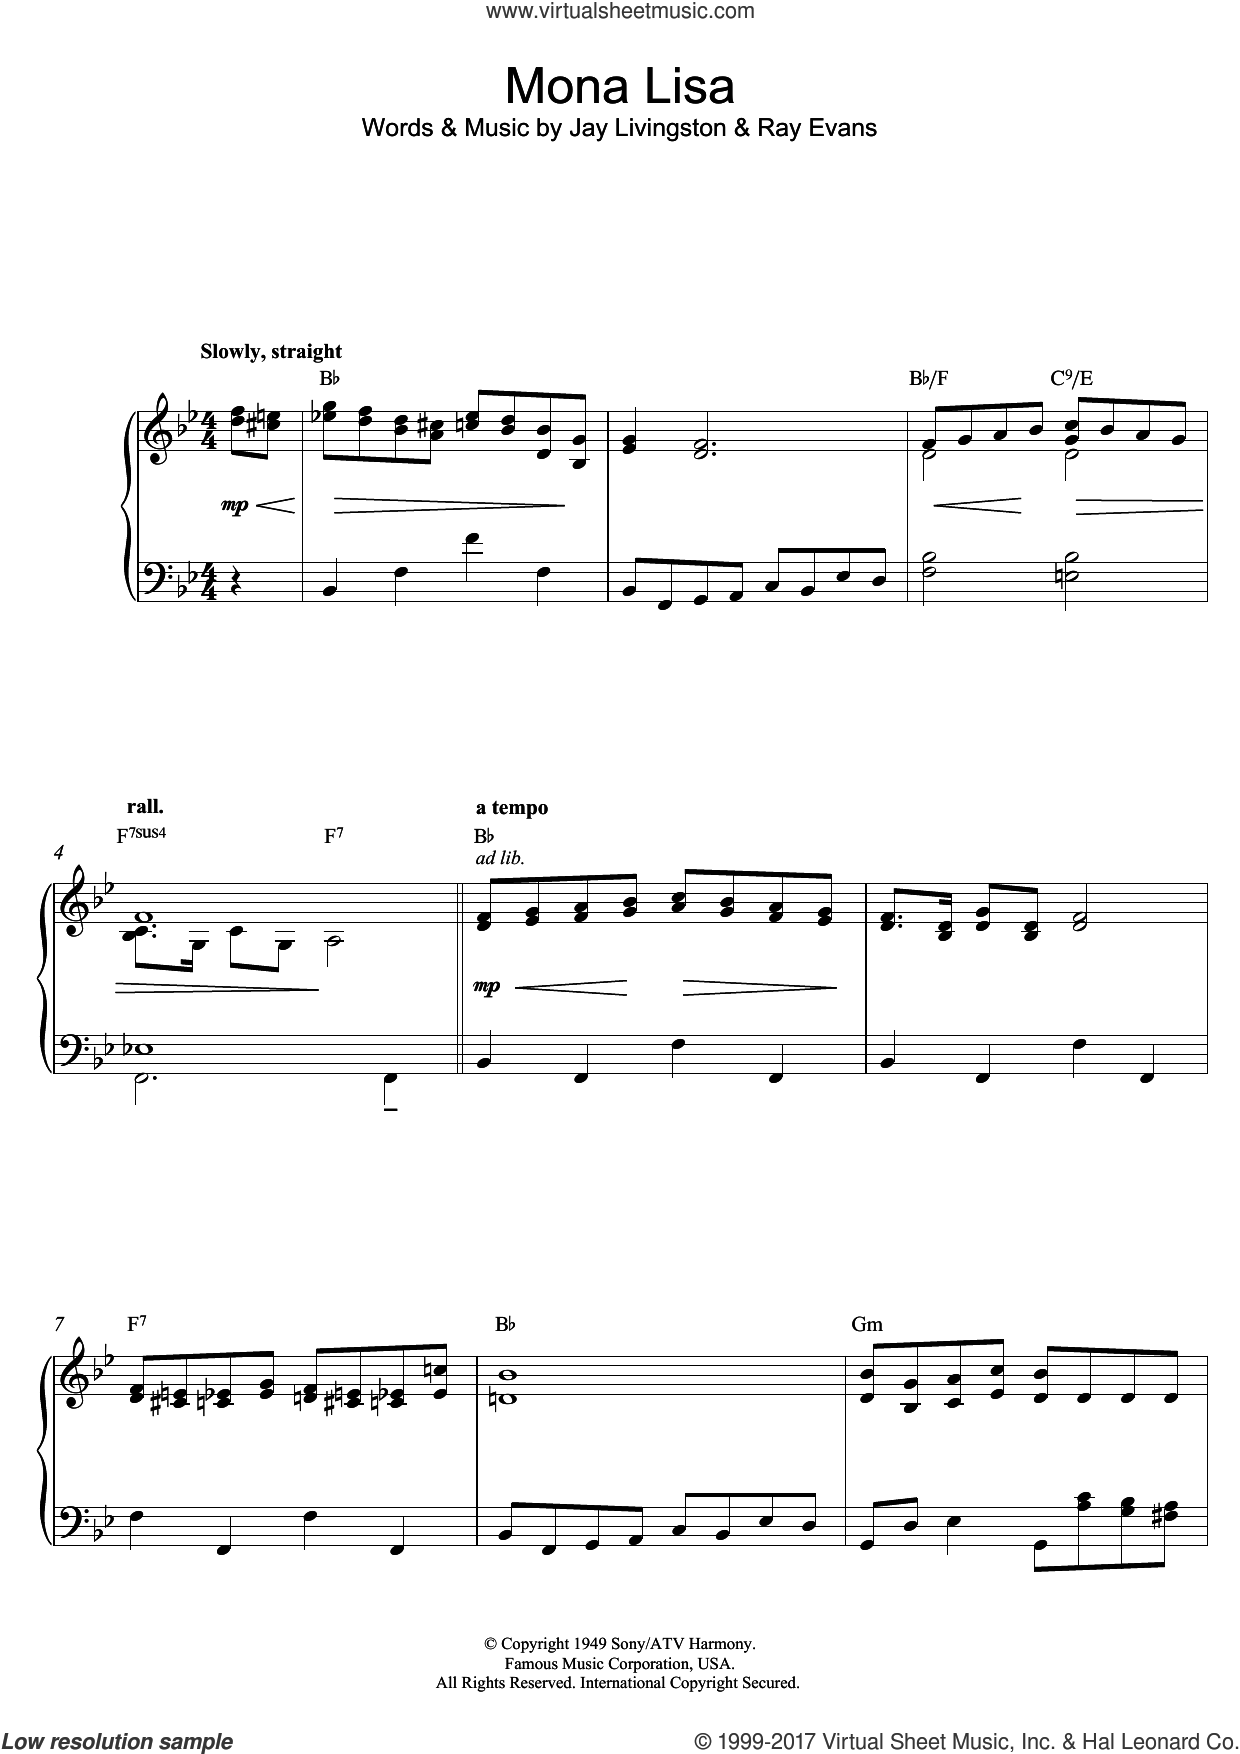 Mona Lisa, (intermediate) sheet music for piano solo by Nat King Cole, Jay Livingston and Ray Evans, intermediate skill level